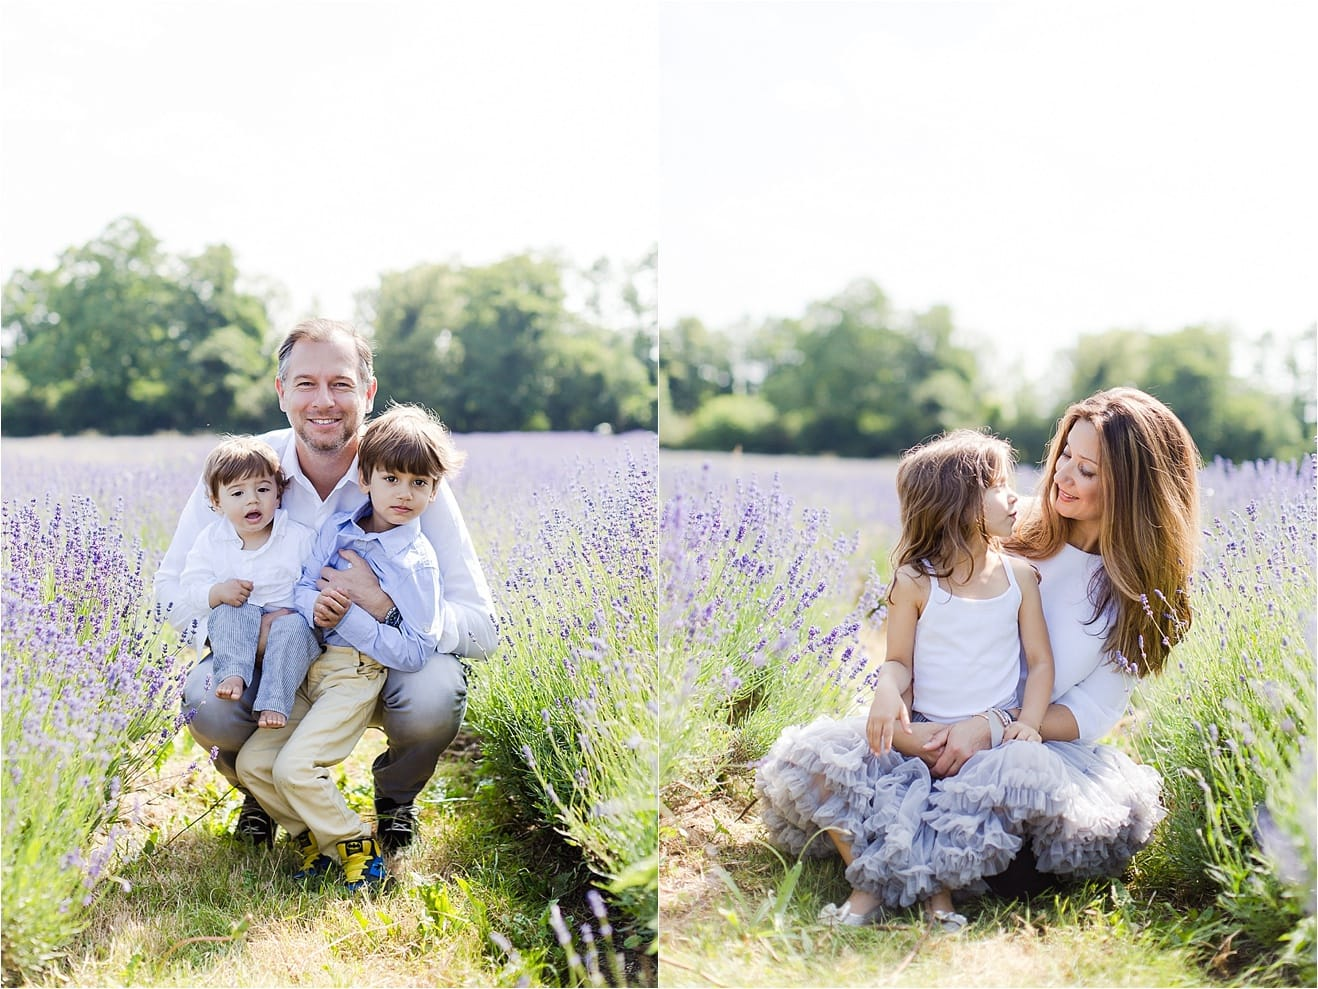 020_family-photography-lavender-eddie-judd-photographer_